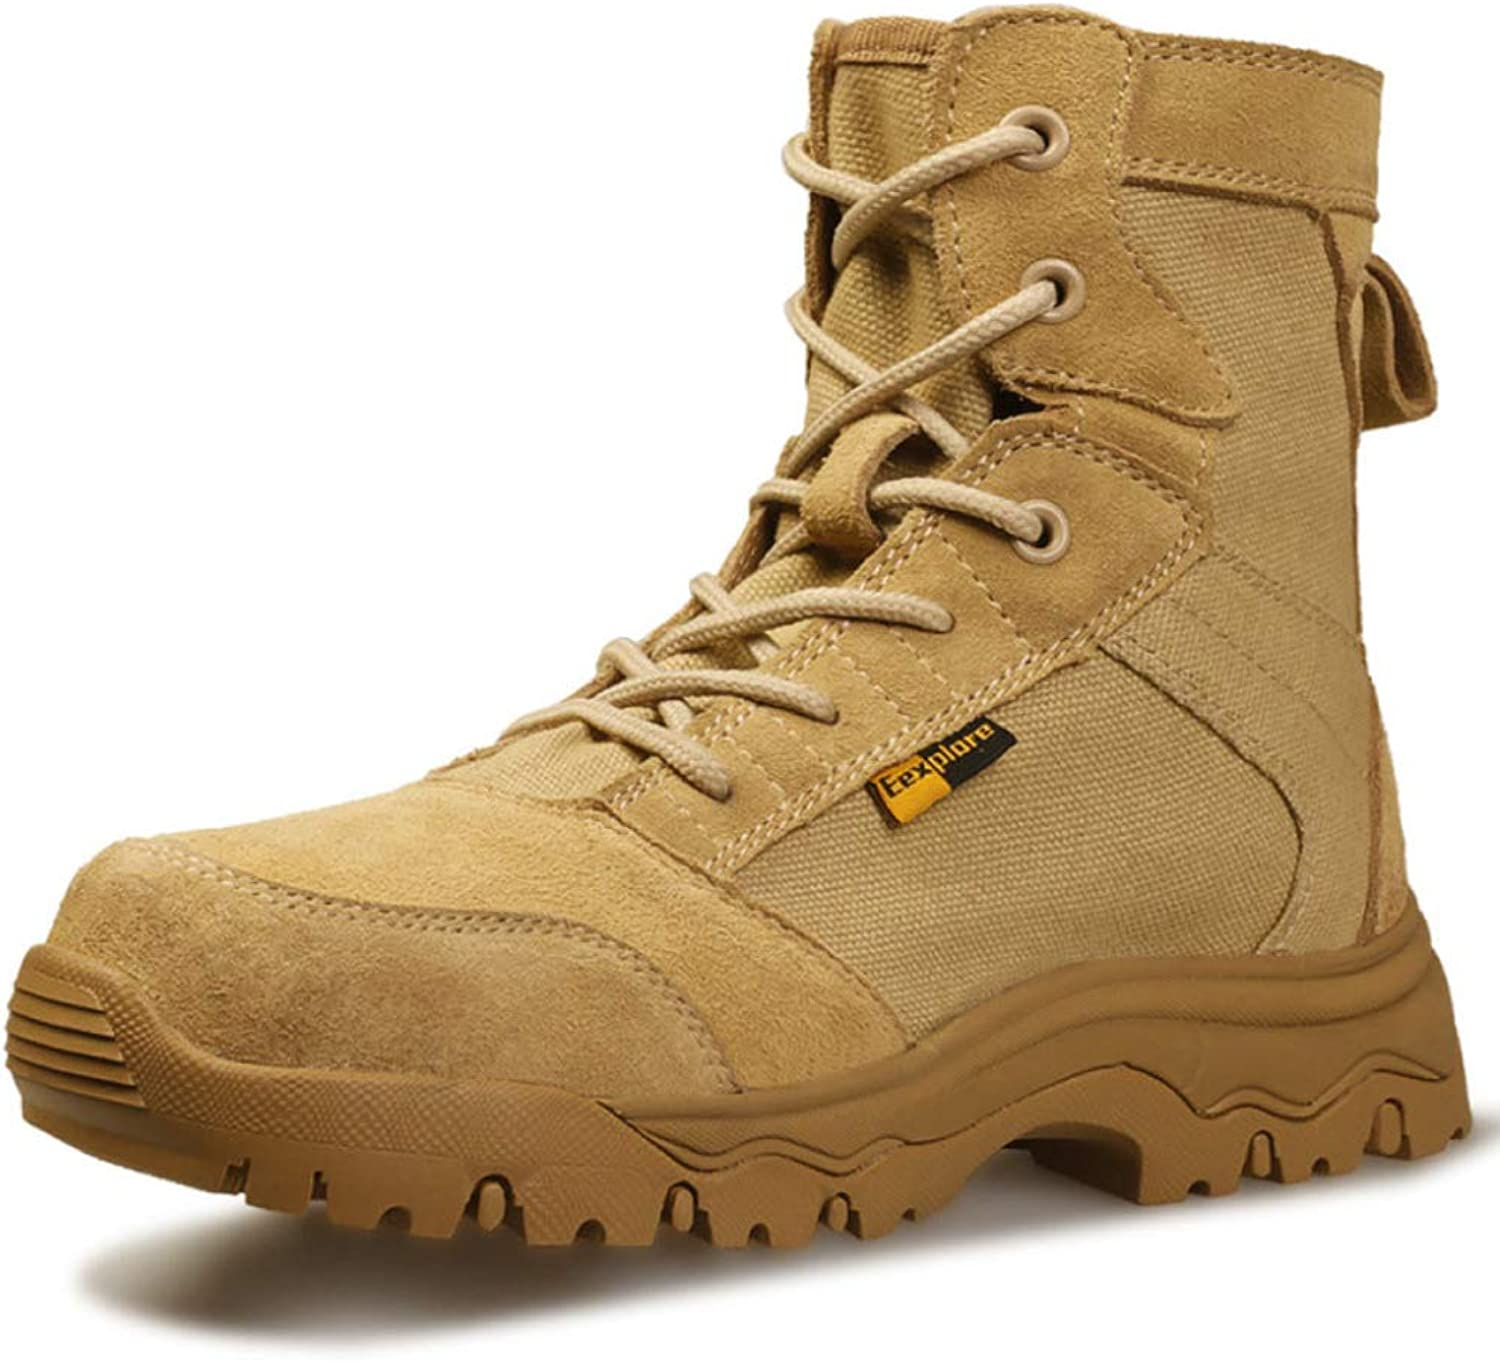 Mens Ultralight Military Army Combat Boots Desert Special Forces Breathable Armed Tactics shoes Outdoor Mountaineering High Top Footwear